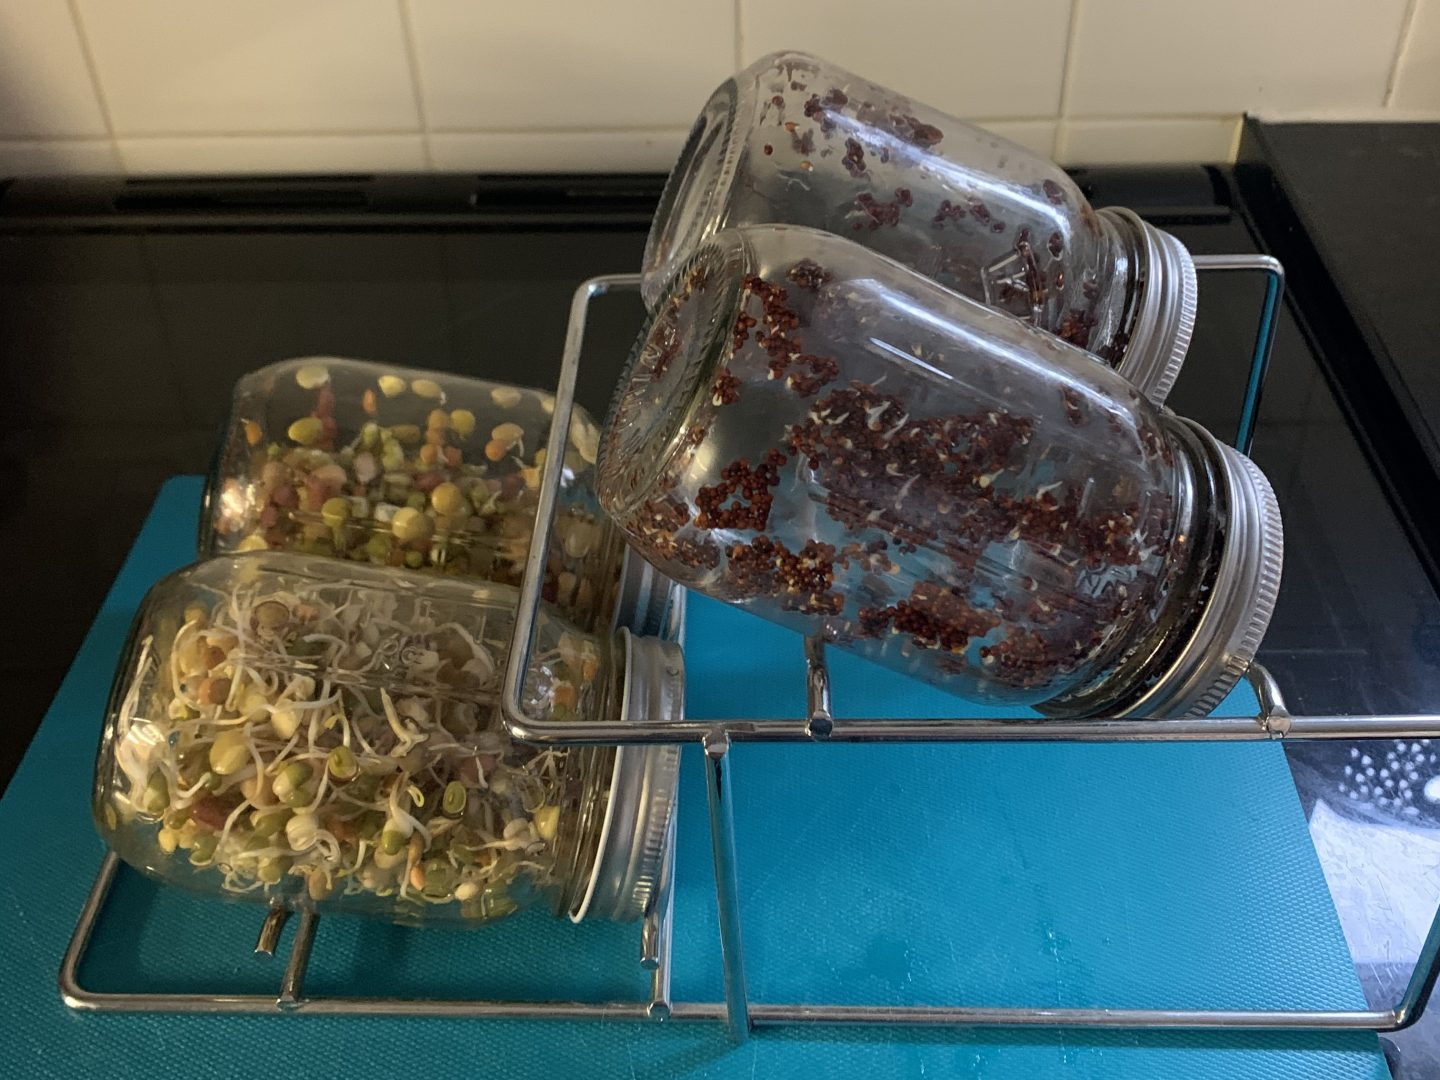 4 jars of sprouting seeds growing